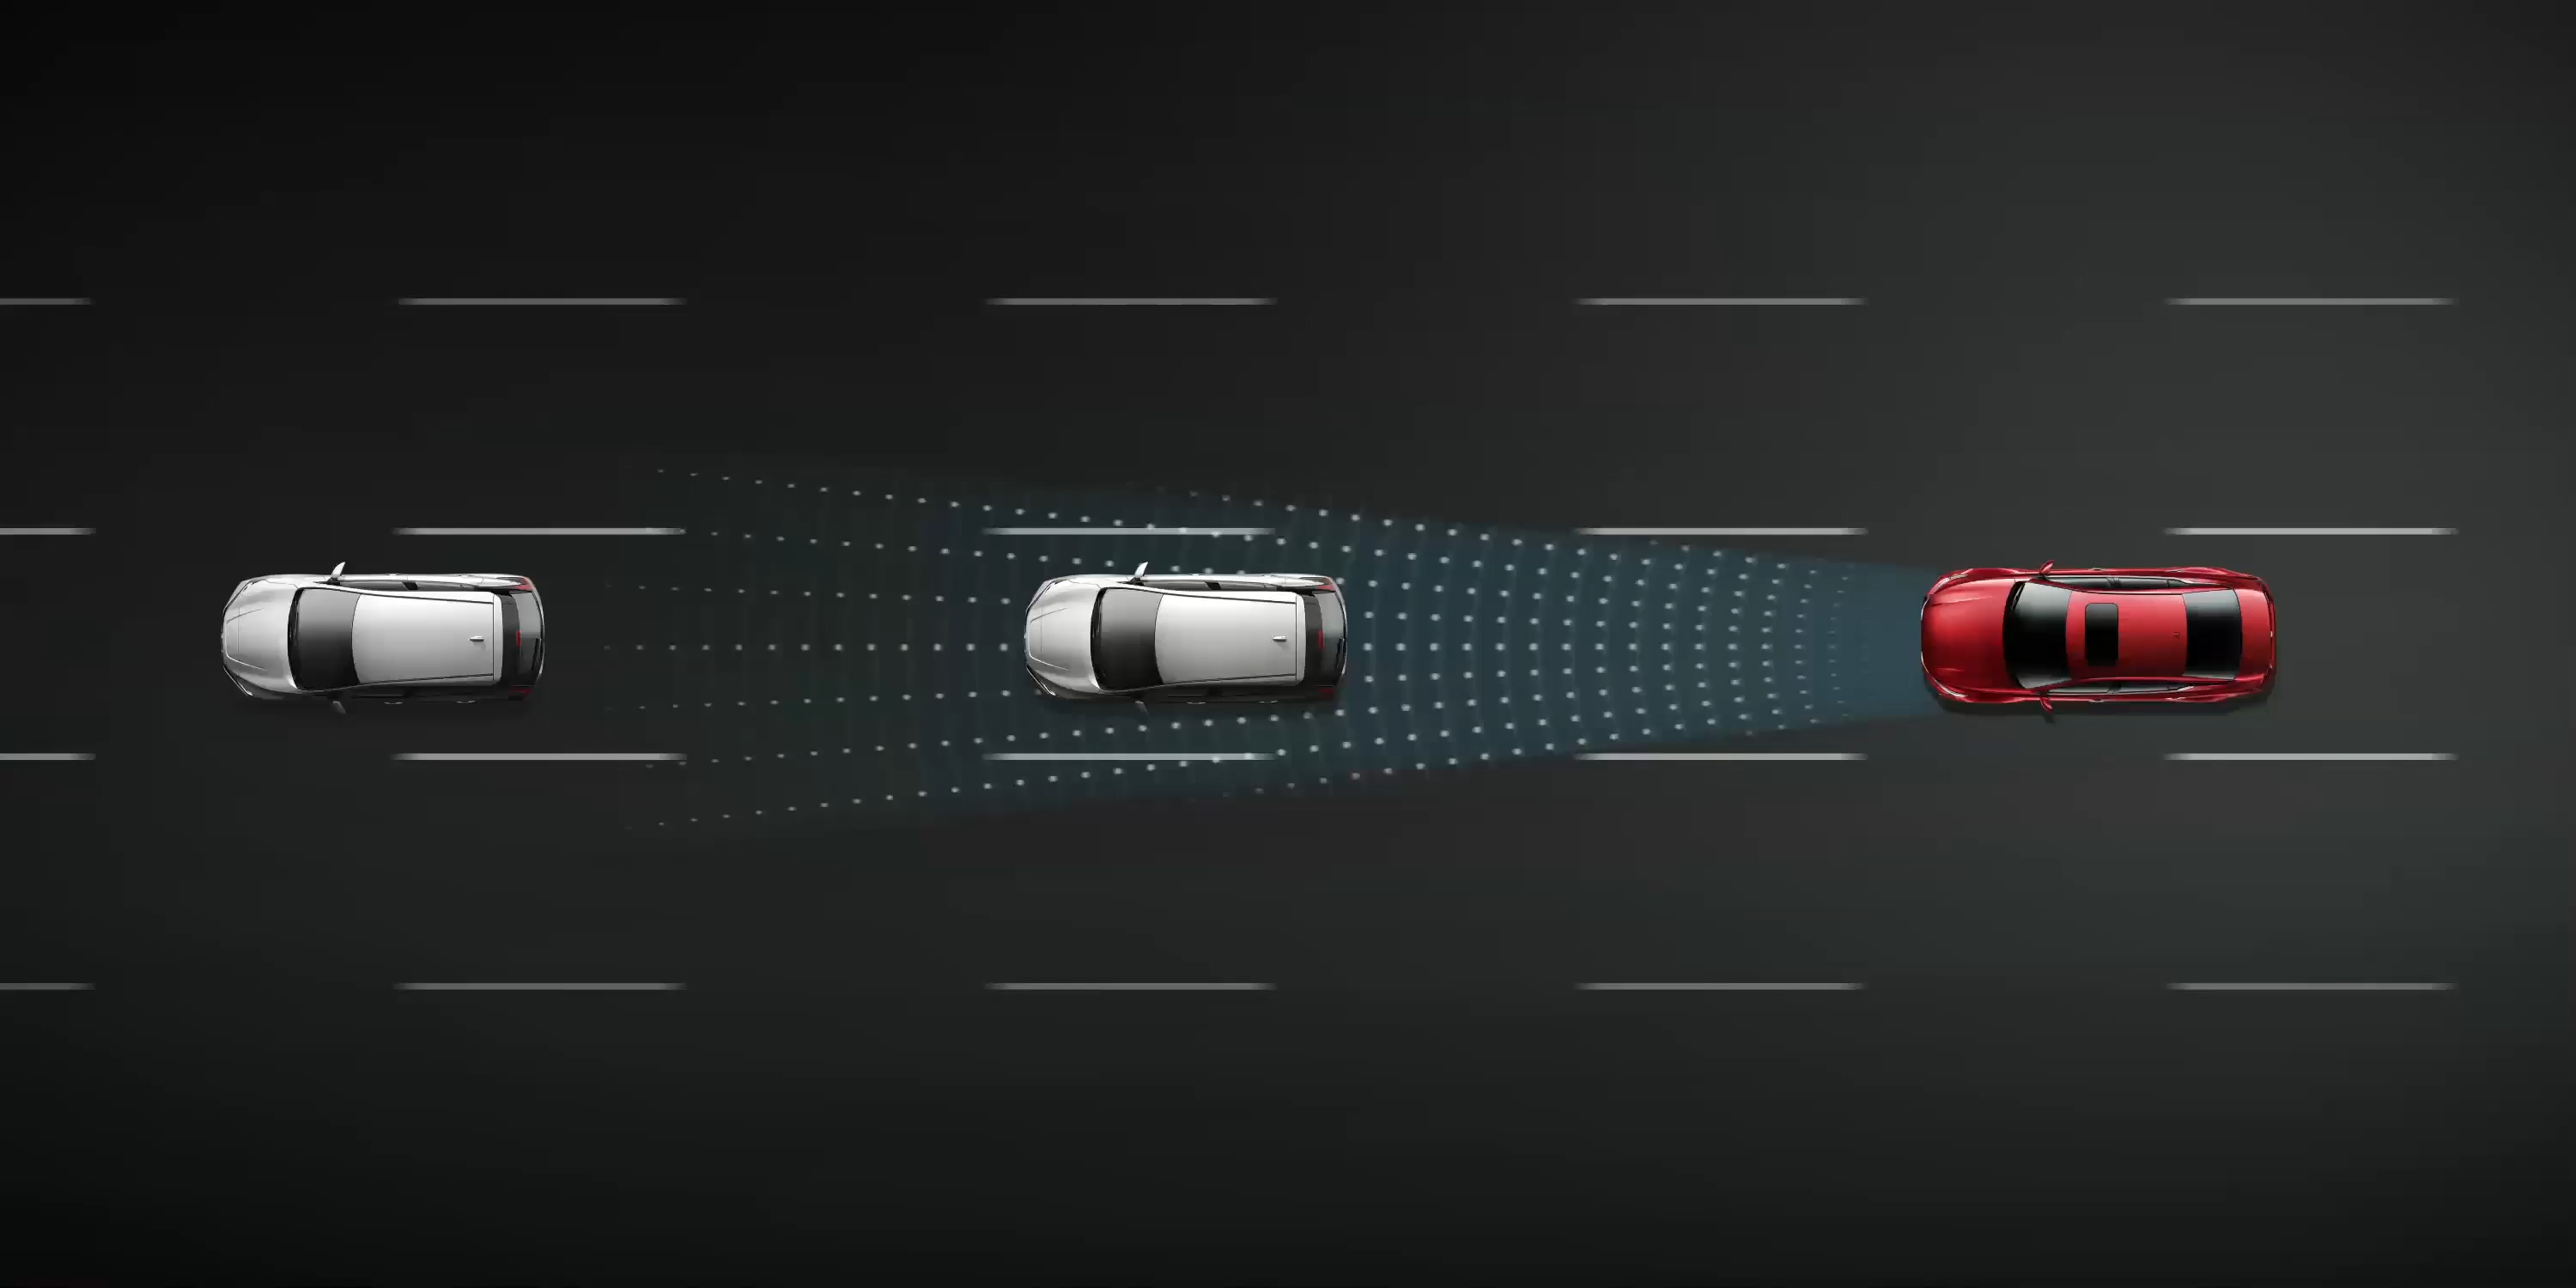 Nissan Altima Intelligent Forward Collision Warning Video